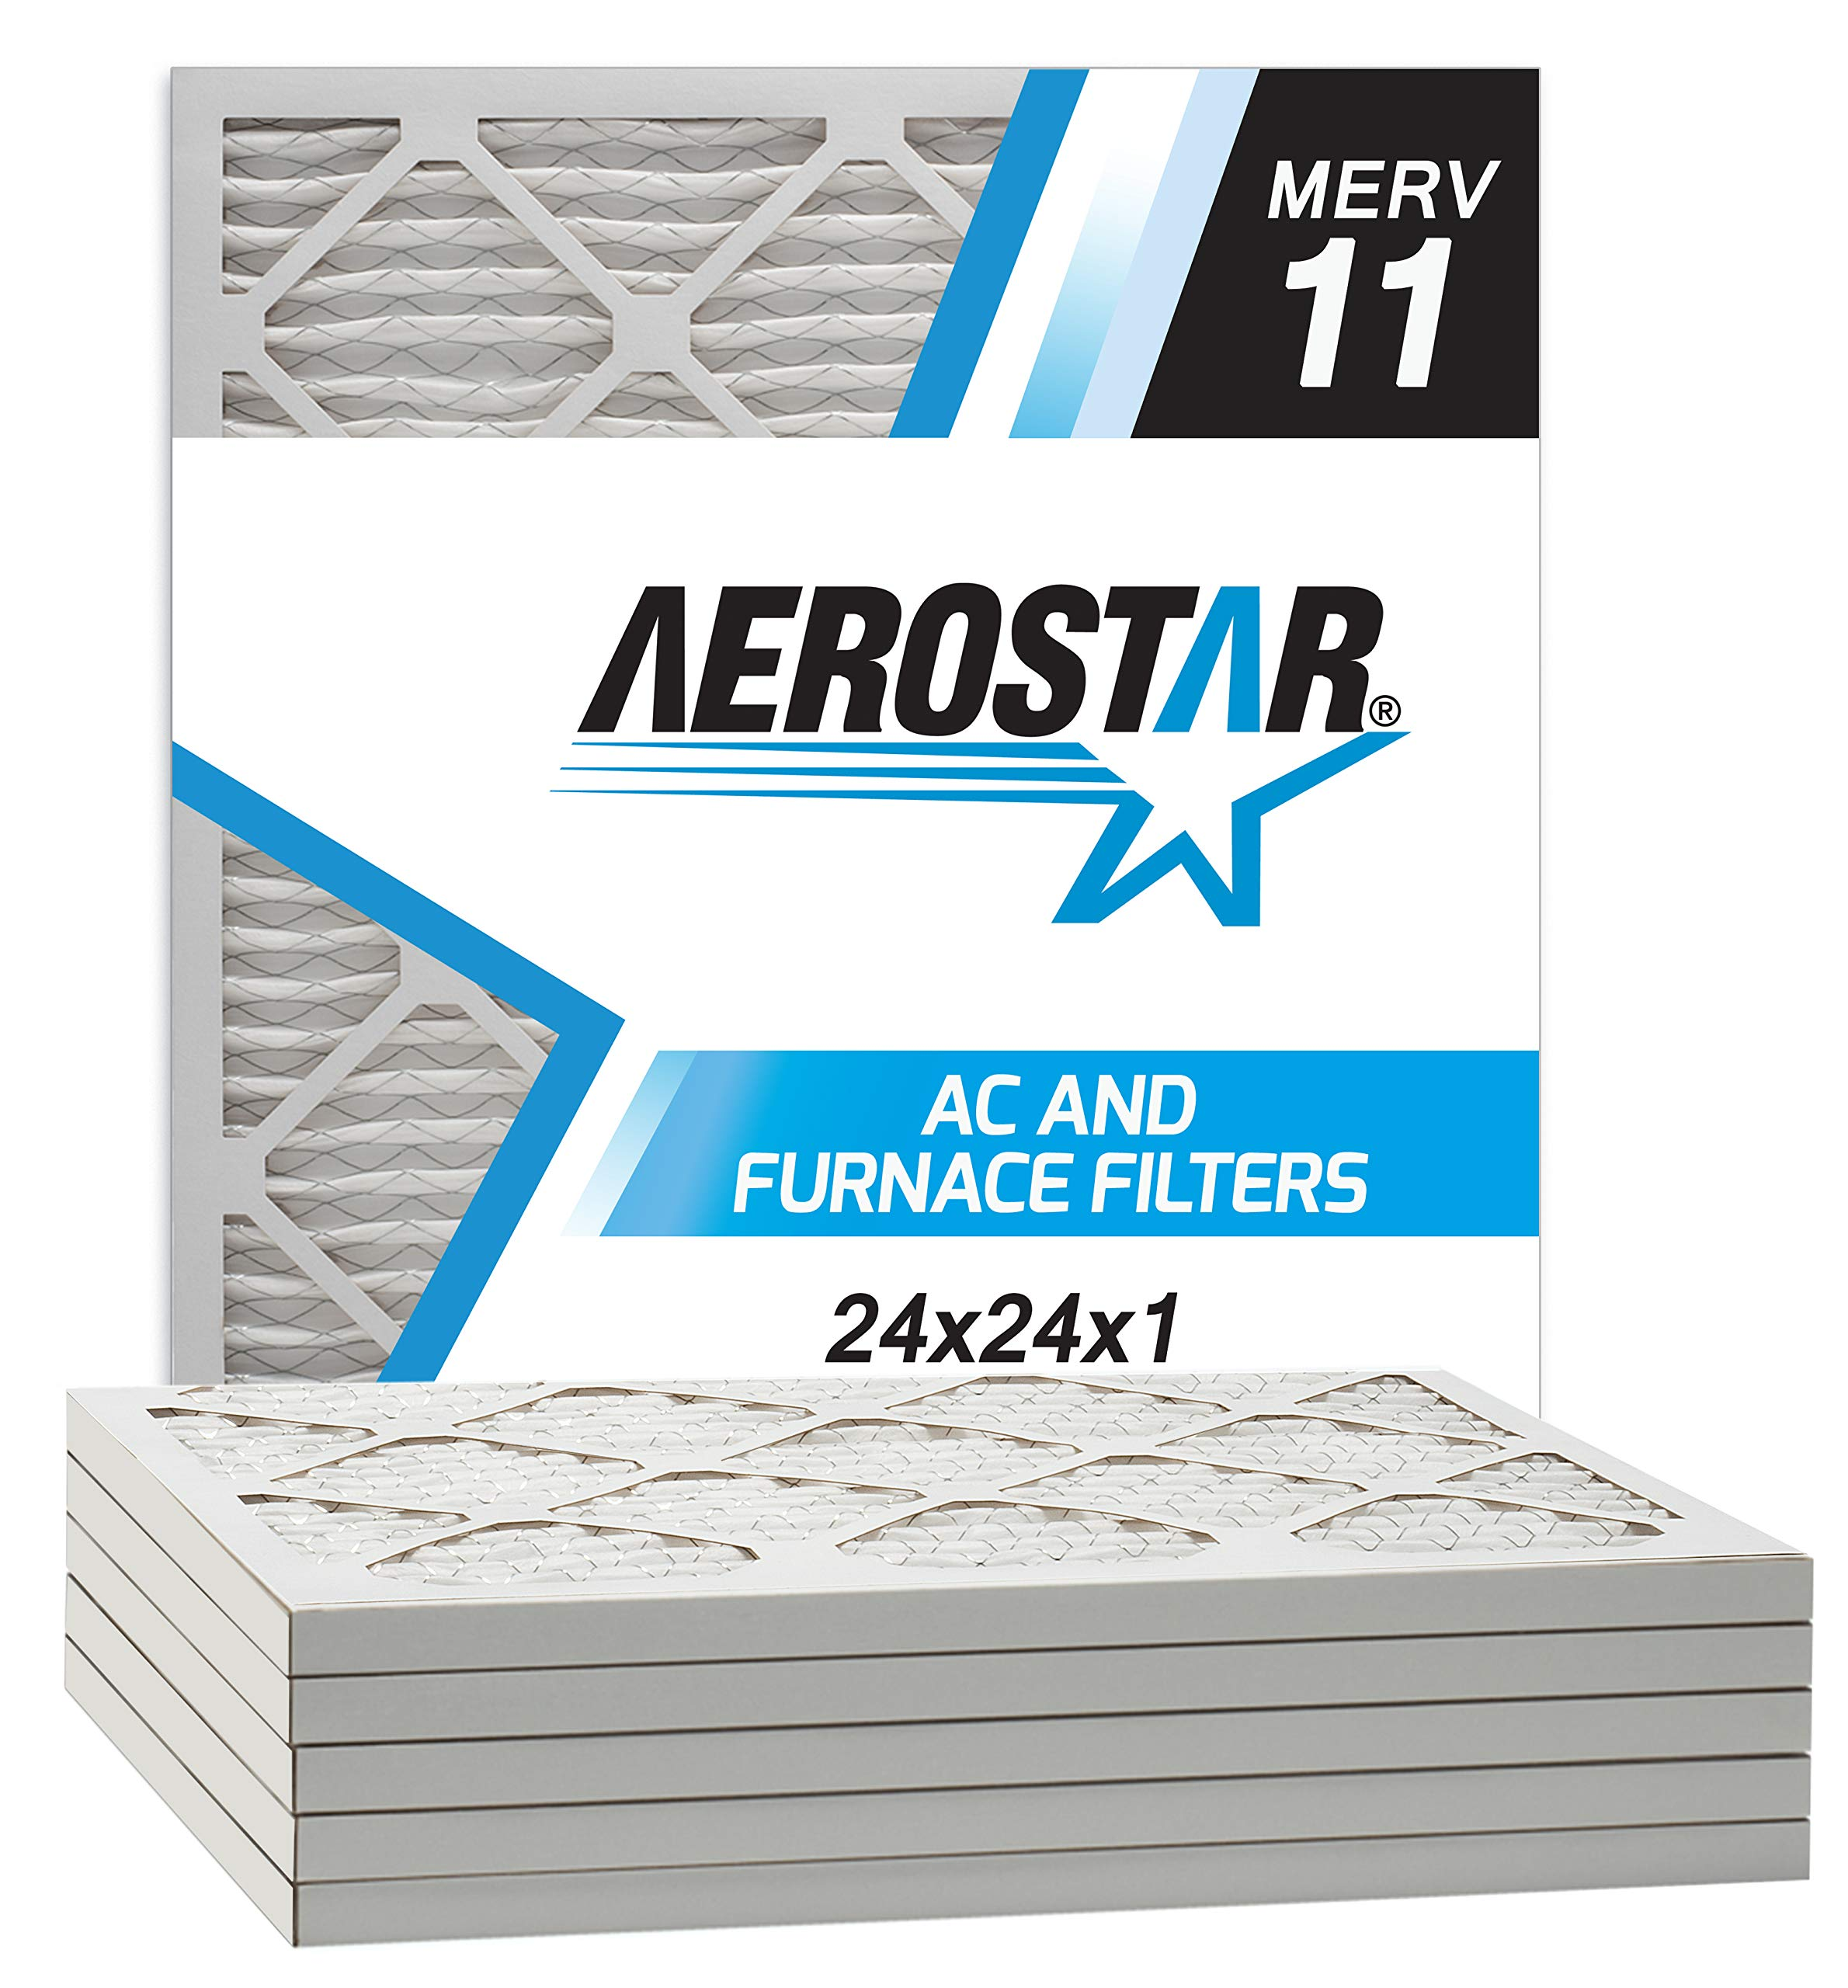 Aerostar Pleated Air Filter, MERV 11, 24x24x1, Pack of 6, Made in the USA by Aerostar